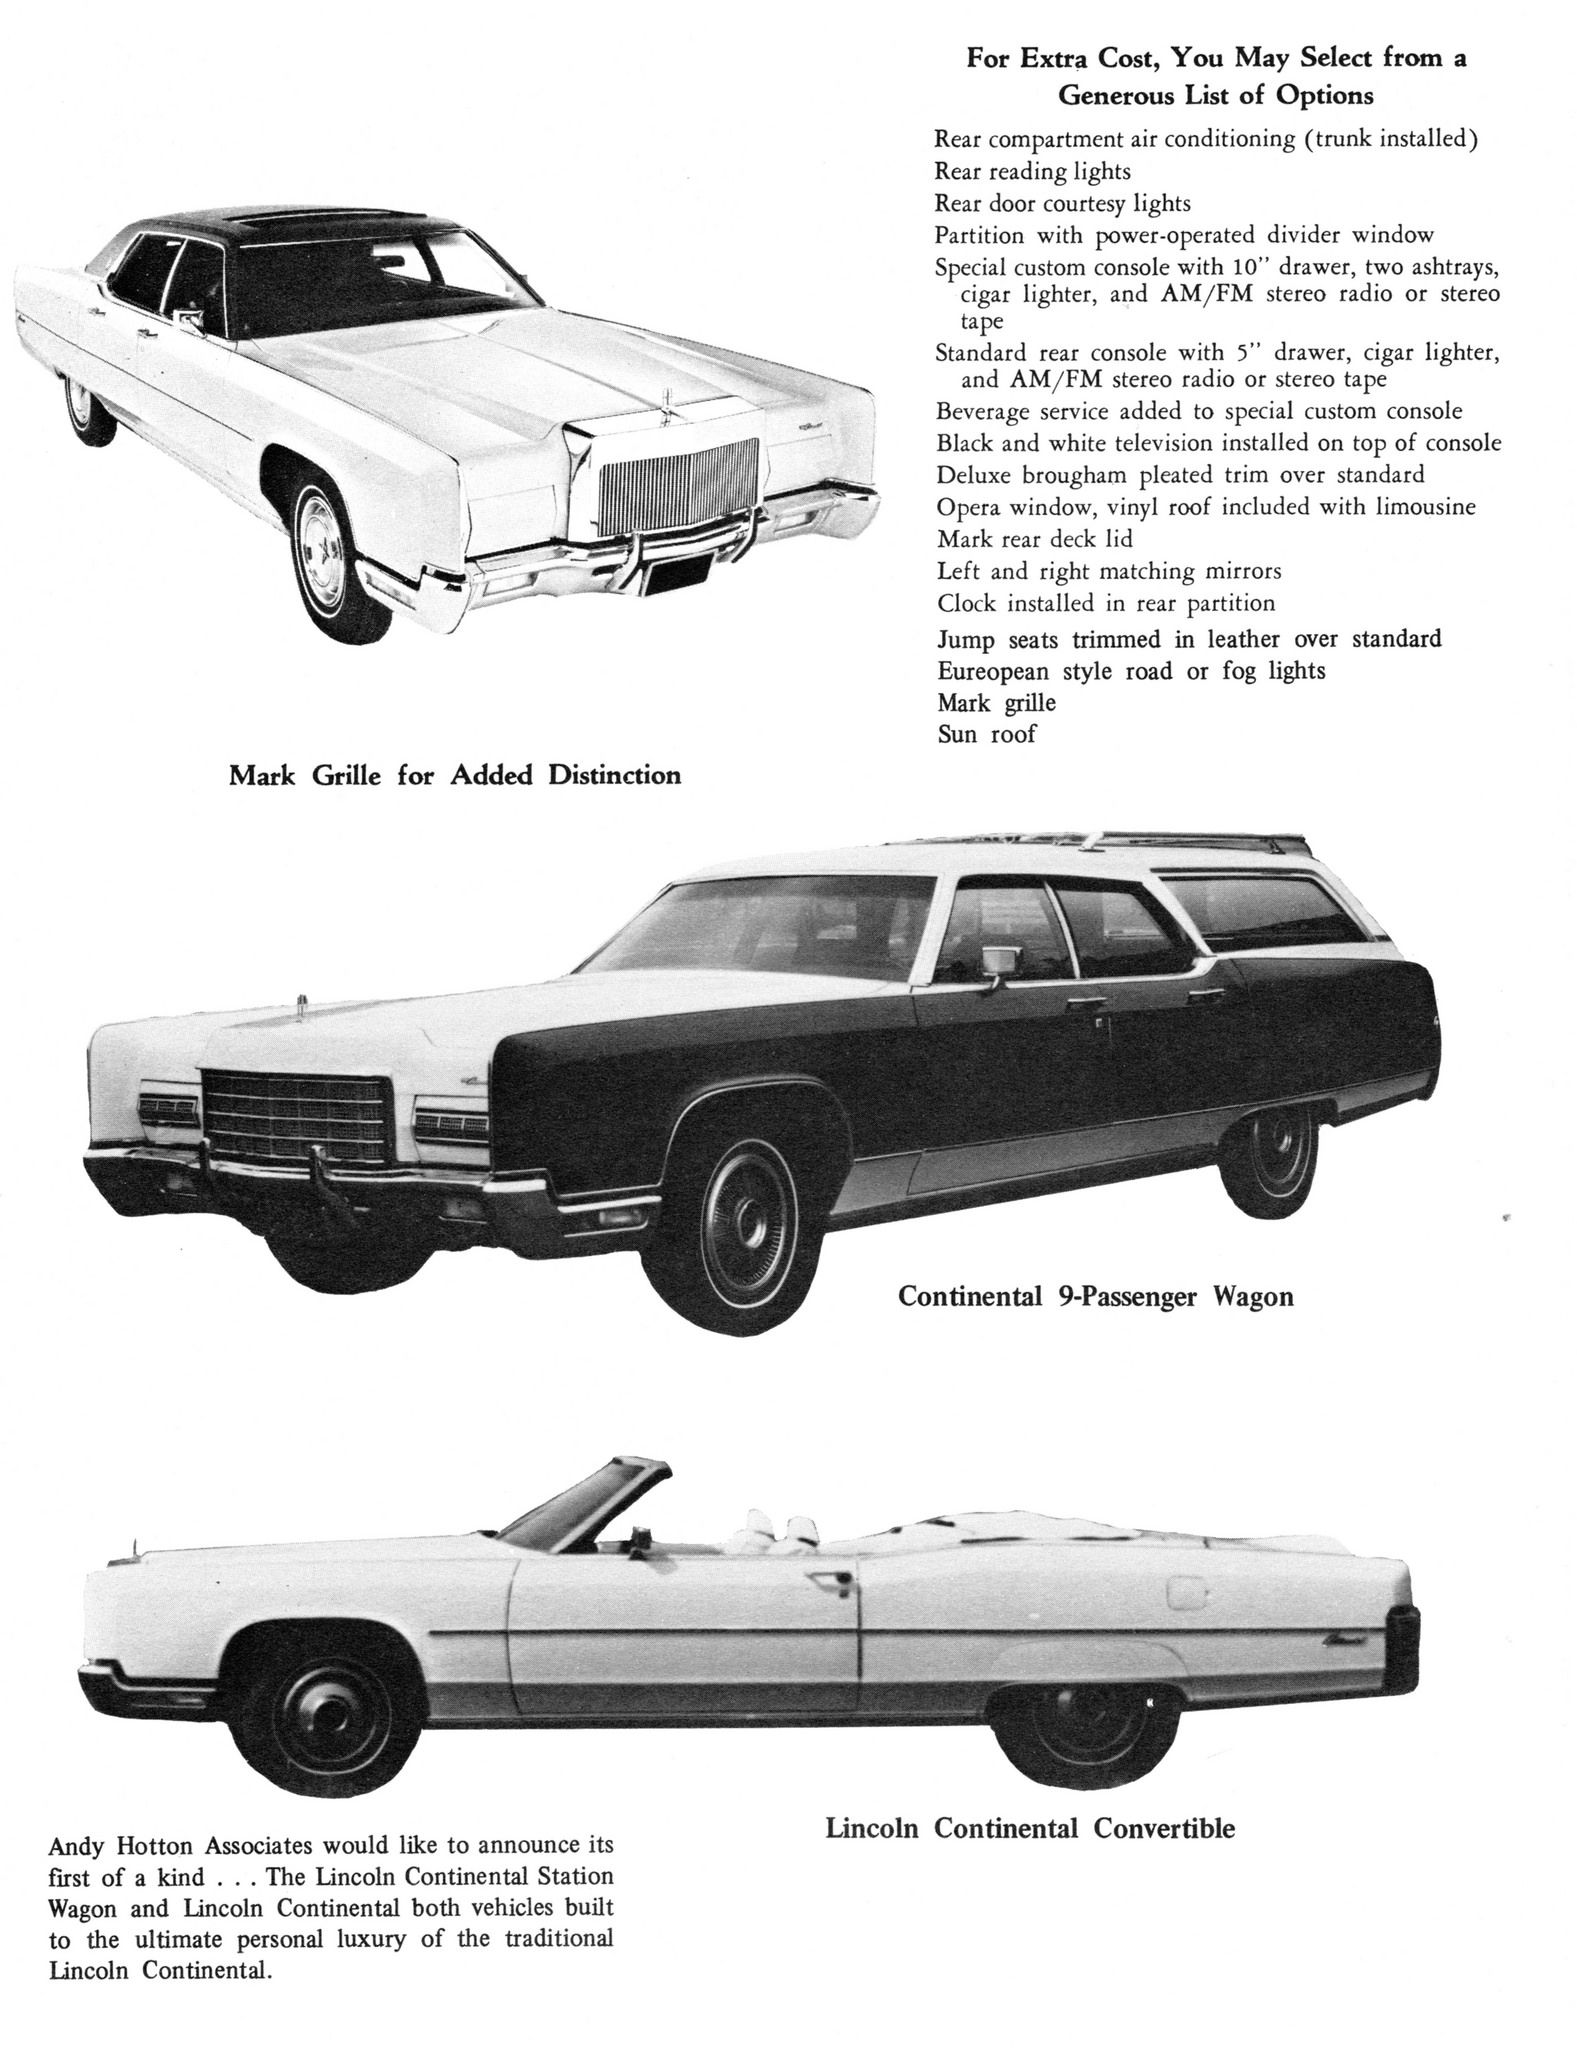 1973 Lincoln Continental Wagon Convertible Conversions By Andy Hotton Ociates Aha Ad